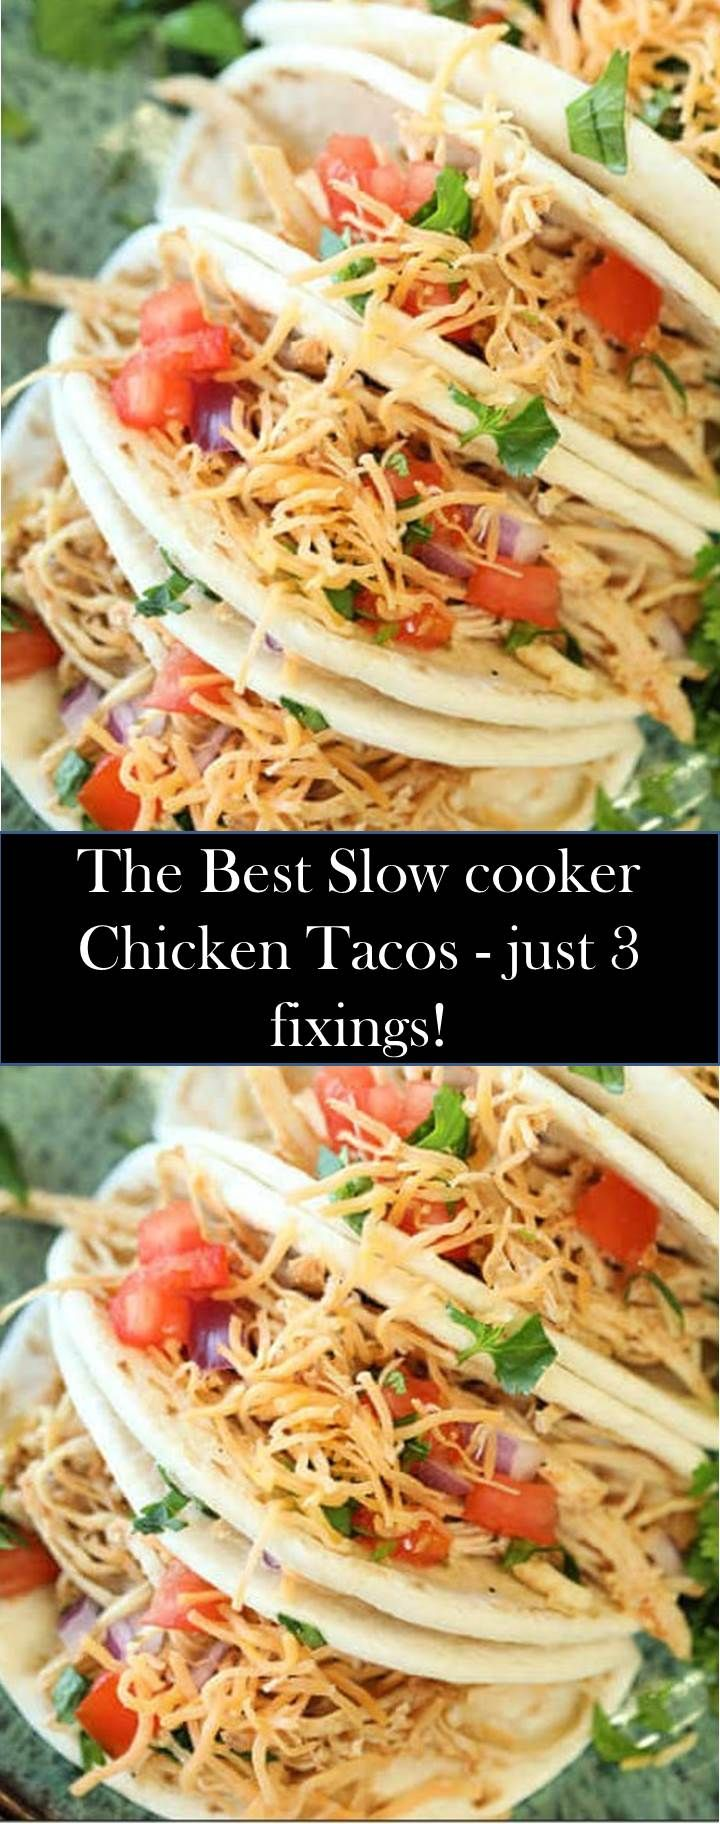 ★★★★★ 956 reviews : #Slow #cooker #Chicken #Tacos - just #3 #fixings! Special Foods And Drinks Are Ready To Accompany You ! Slow cooker Chicken Tacos - just 3 fixings! Slow cooker Chicken Tacos formula is so great! Make moderate cooker Shredded chicken tacos! Chicken tacos slow cooker formula is snappy. Slow cooker destroyed chicken tacos #shreddedchickentacos